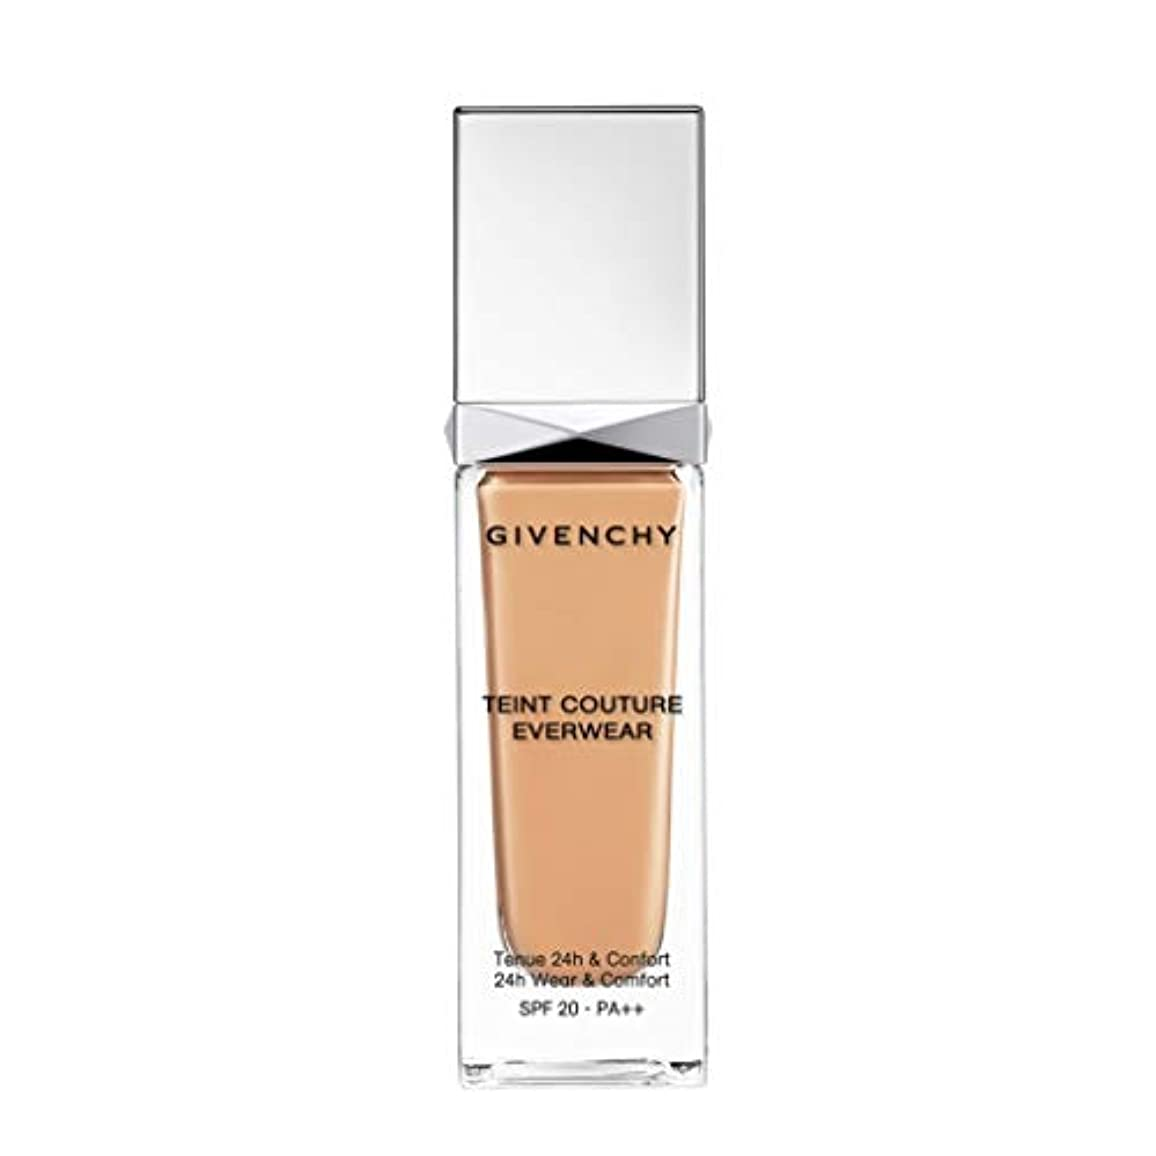 委託無限カメジバンシィ Teint Couture Everwear 24H Wear & Comfort Foundation SPF 20 - # P210 30ml/1oz並行輸入品